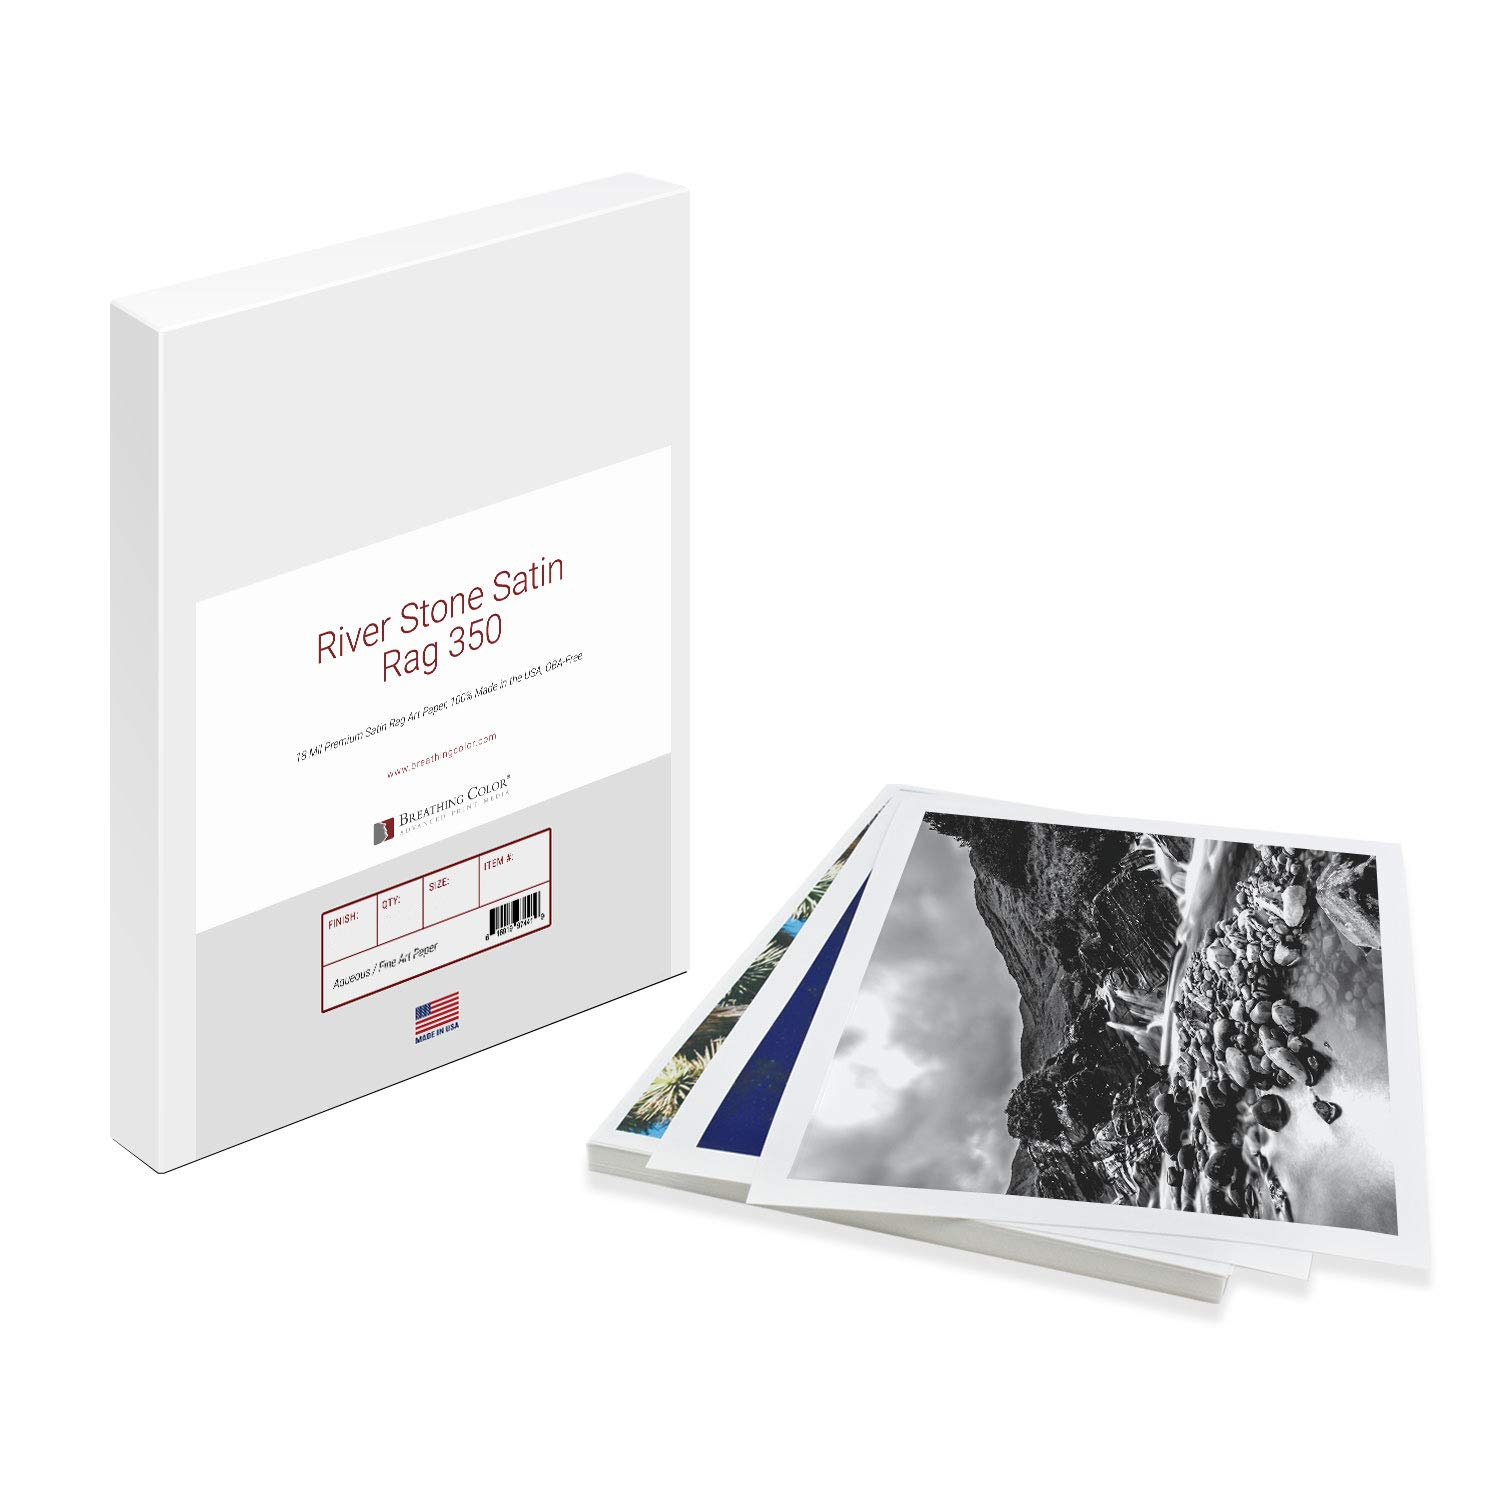 Premium River Stone Satin Rag Paper Perfect For Use on Professional Makes and Models of Epson, Canon and HP printers preferred by Professionals. 350 gram Satin Art Paper in 13 inch x 19 inch 25 sheets